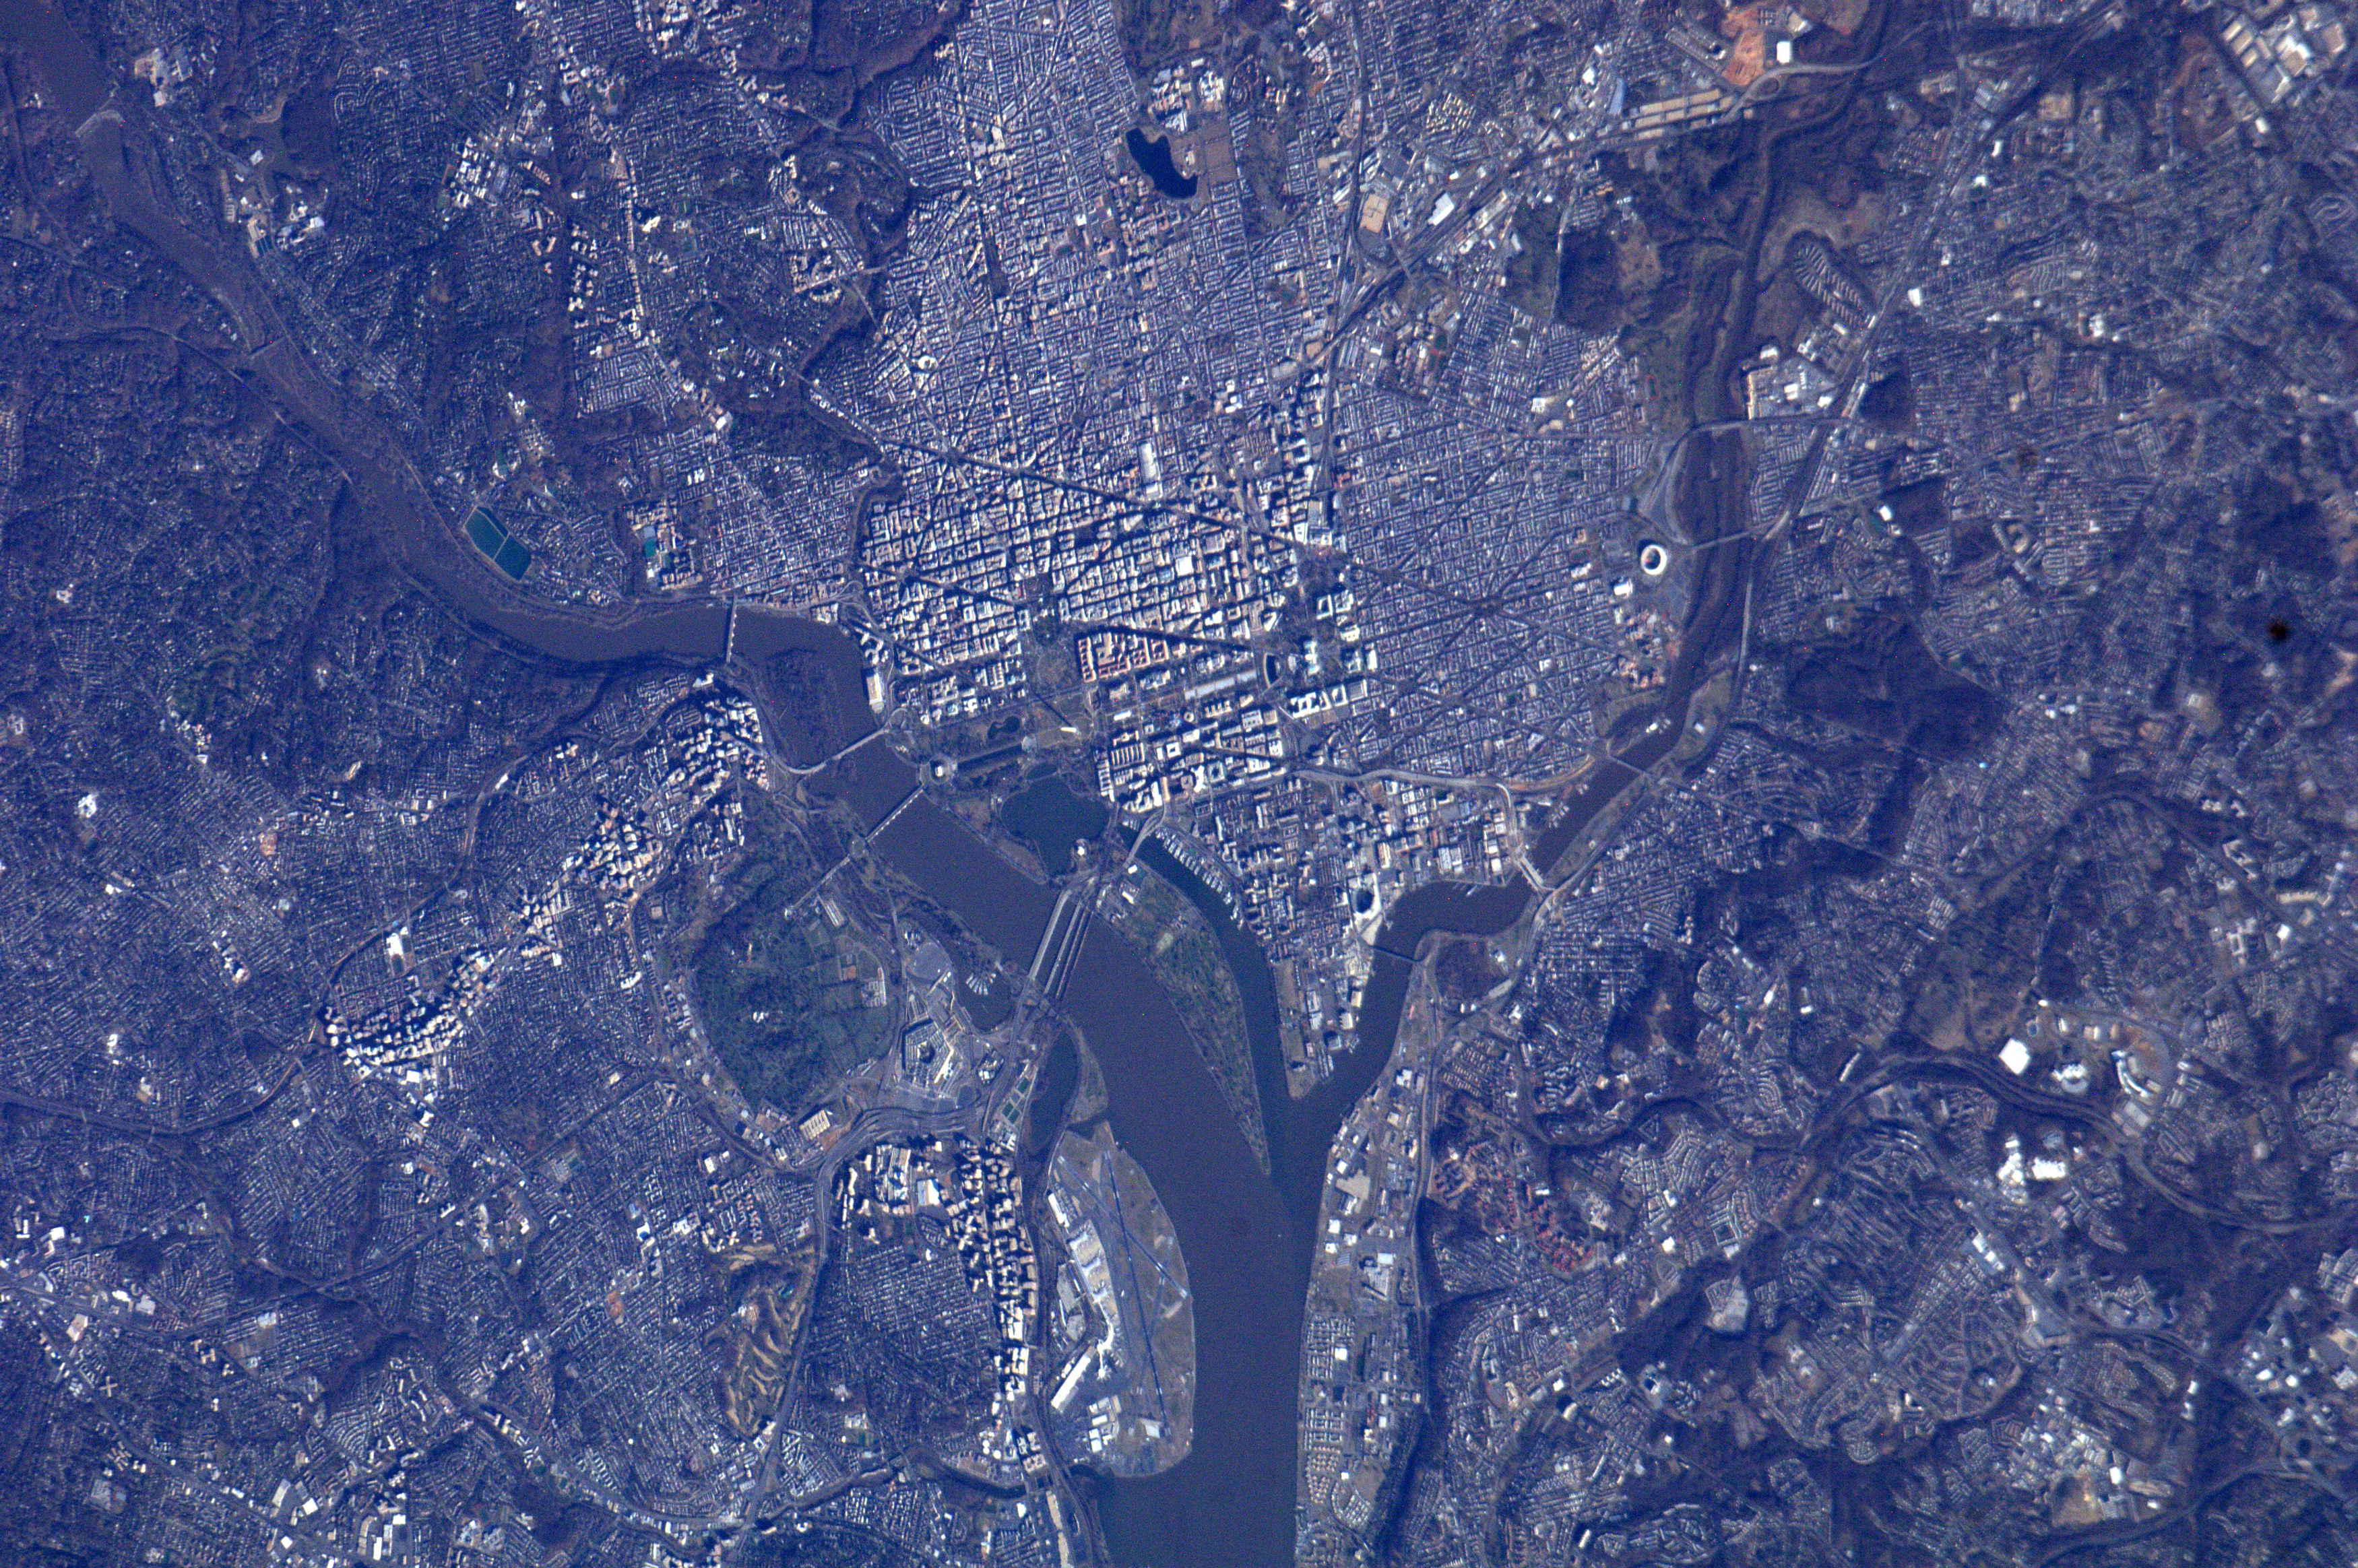 Washington, D.C. and the surrounding area is pictured on January 20, 2013 by astronauts on board the International Space Station one day before the public Inauguration of U.S. President Barack Obama.   This detailed view shows the Potomac River and its bridges at left, with National Mall at the center, stretching eastward from the Lincoln Memorial to the Washington Monument toward the Capitol building, where the inaugural ceremony will be held.   NASA has been participating in inaugural activities this weekend, culminating in the appearance of the Curiosity rover and Orion spacecraft in the Inaugural Parade on January 21.   REUTERS/NASA/Handout  (UNITED STATES - Tags: POLITICS) FOR EDITORIAL USE ONLY. NOT FOR SALE FOR MARKETING OR ADVERTISING CAMPAIGNS. THIS IMAGE HAS BEEN SUPPLIED BY A THIRD PARTY. IT IS DISTRIBUTED, EXACTLY AS RECEIVED BY REUTERS, AS A SERVICE TO CLIENTS - TM4E91K1L0Q01